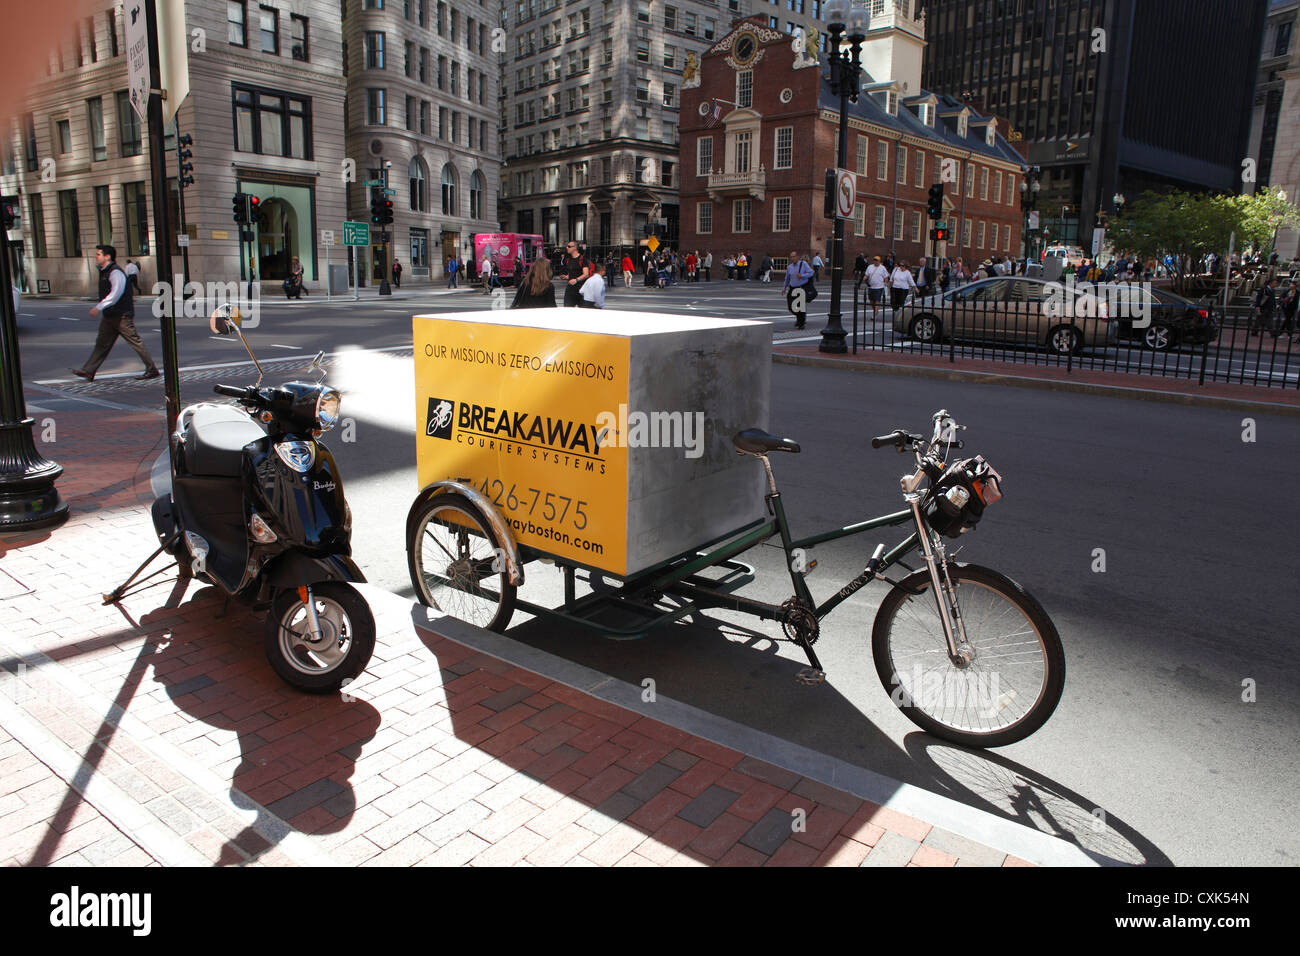 Bicycle Courier Vehicle of Breakaway Courier Systems Parked